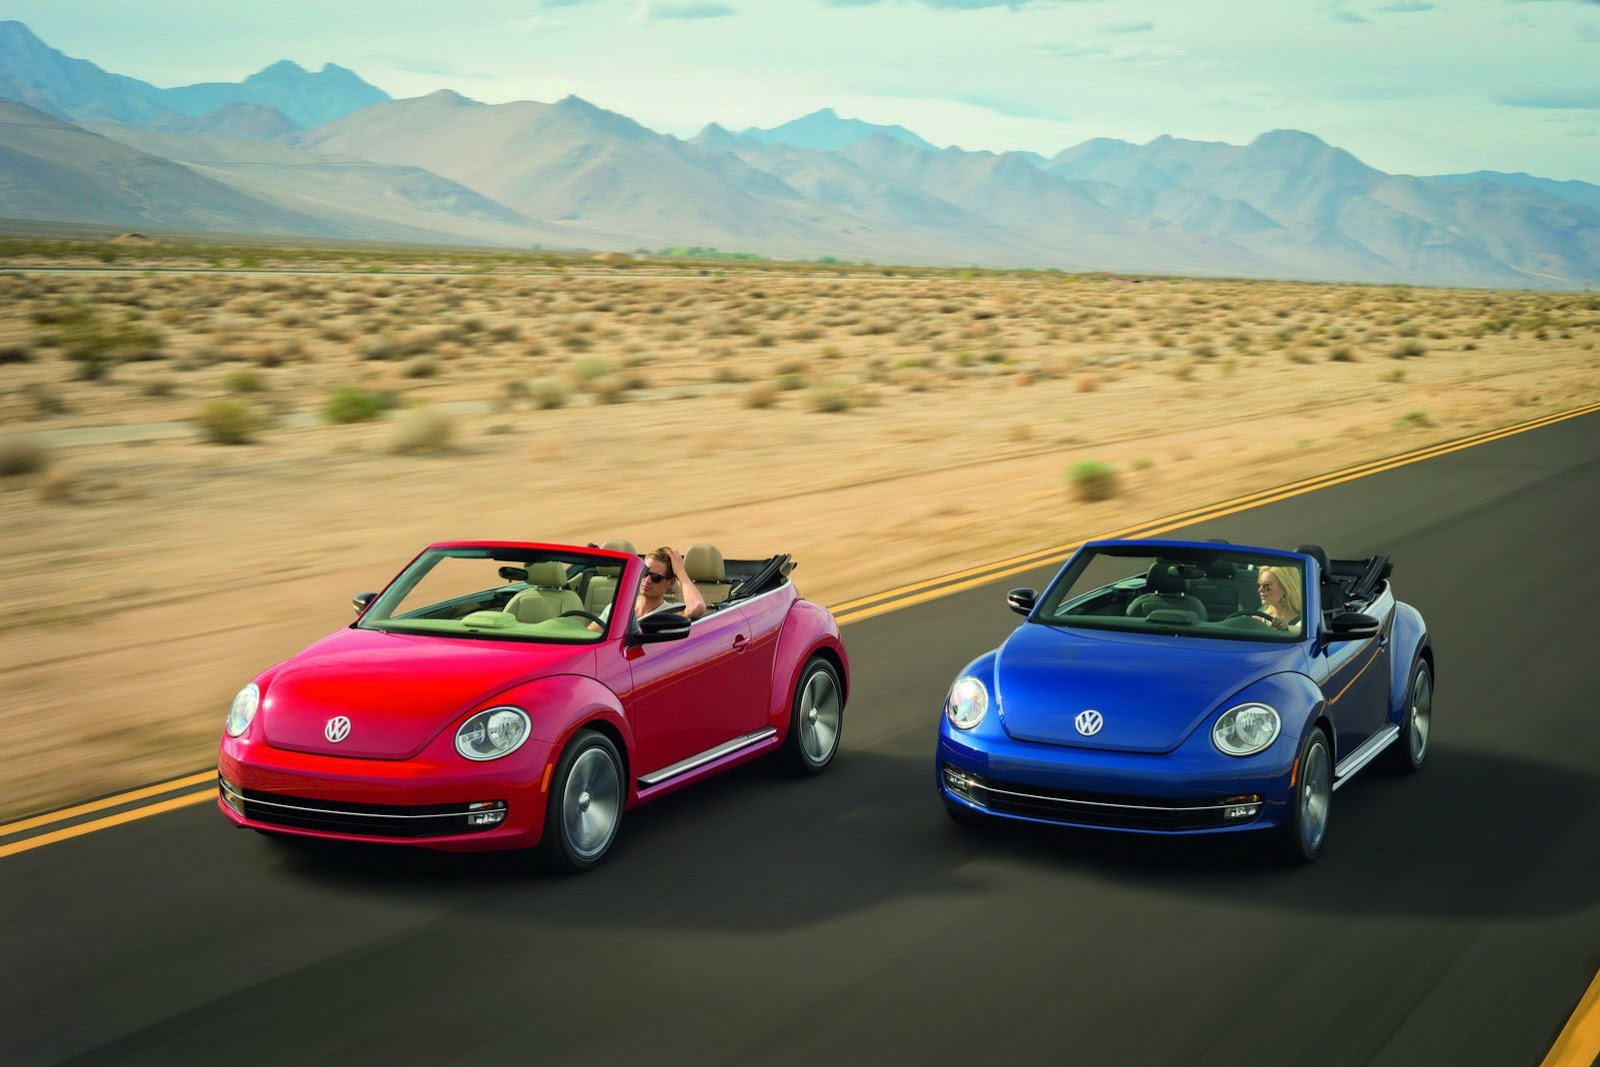 volkswagen details new euro 6 engines for beetle coupe and cabrio autoevolution. Black Bedroom Furniture Sets. Home Design Ideas